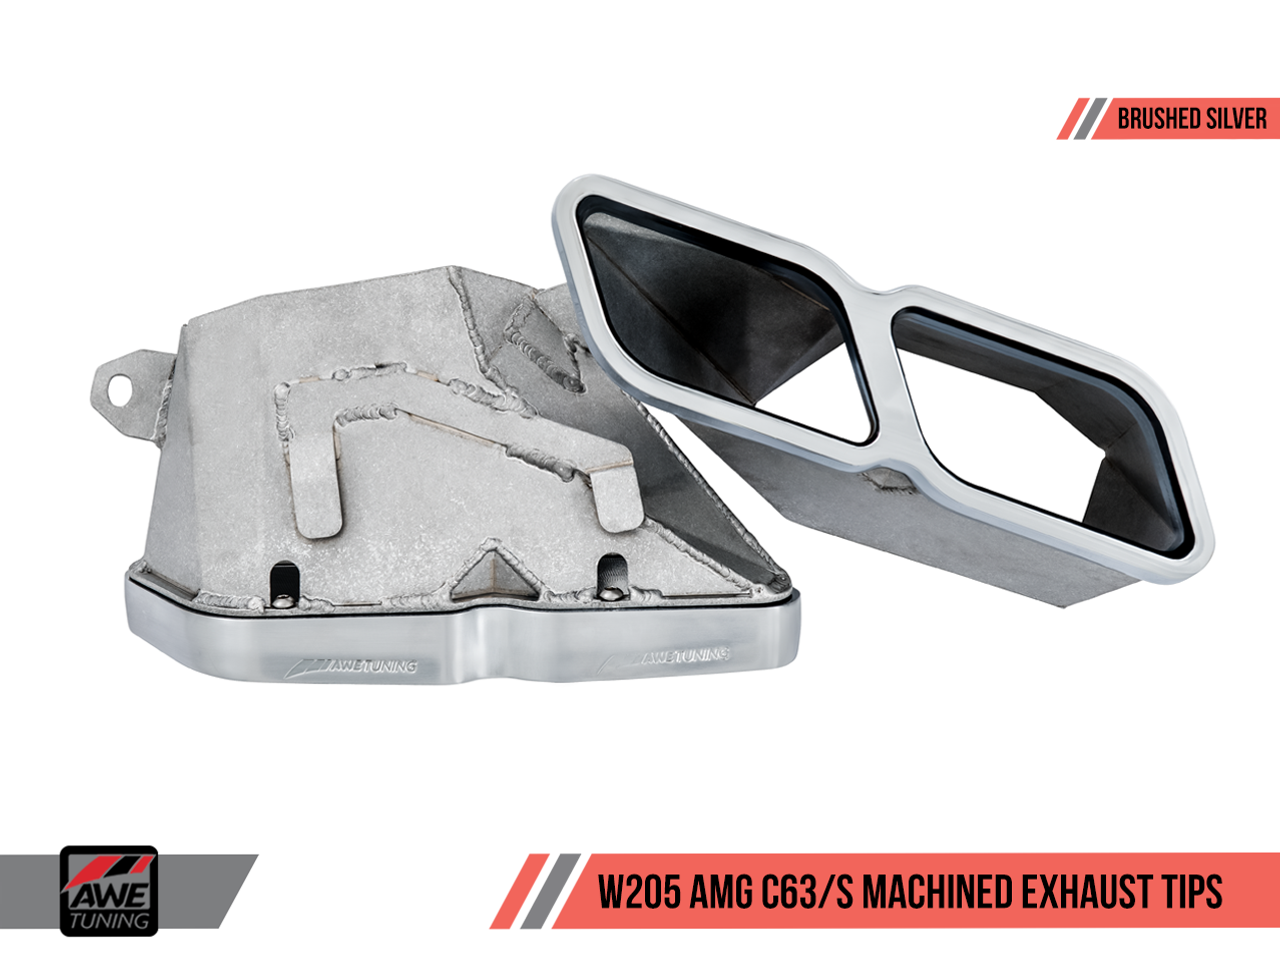 Optional Extra: AWE Tuning Machined Exhaust Tailpipe Trims - Brushed Silver